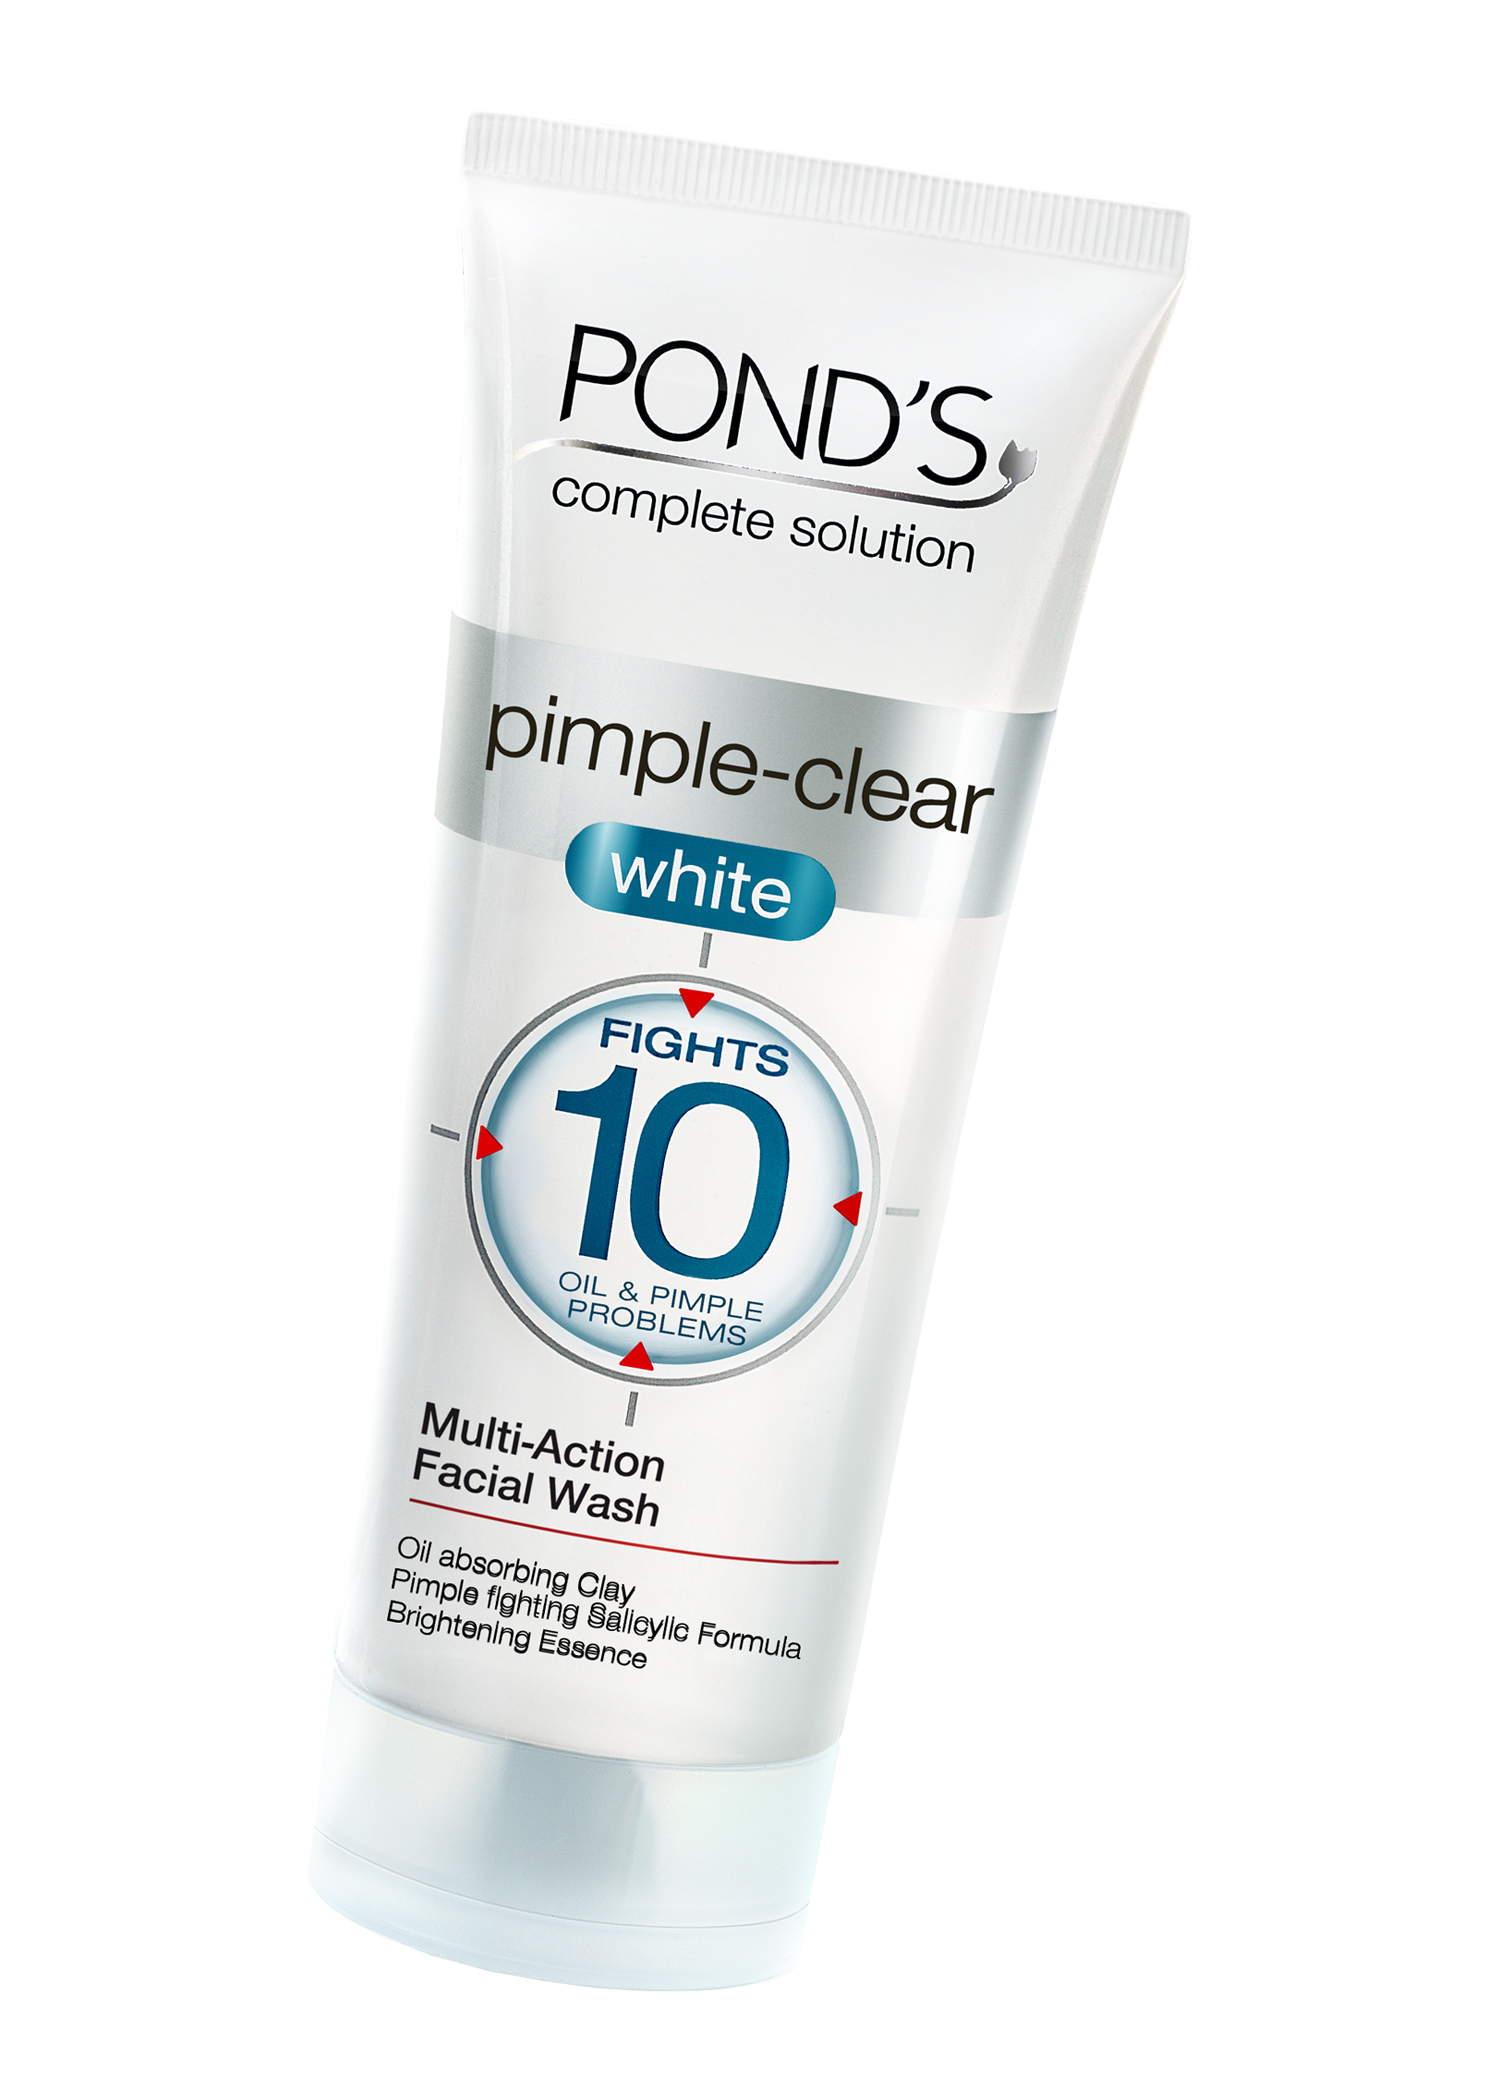 Pond's pimple-clear white face wash